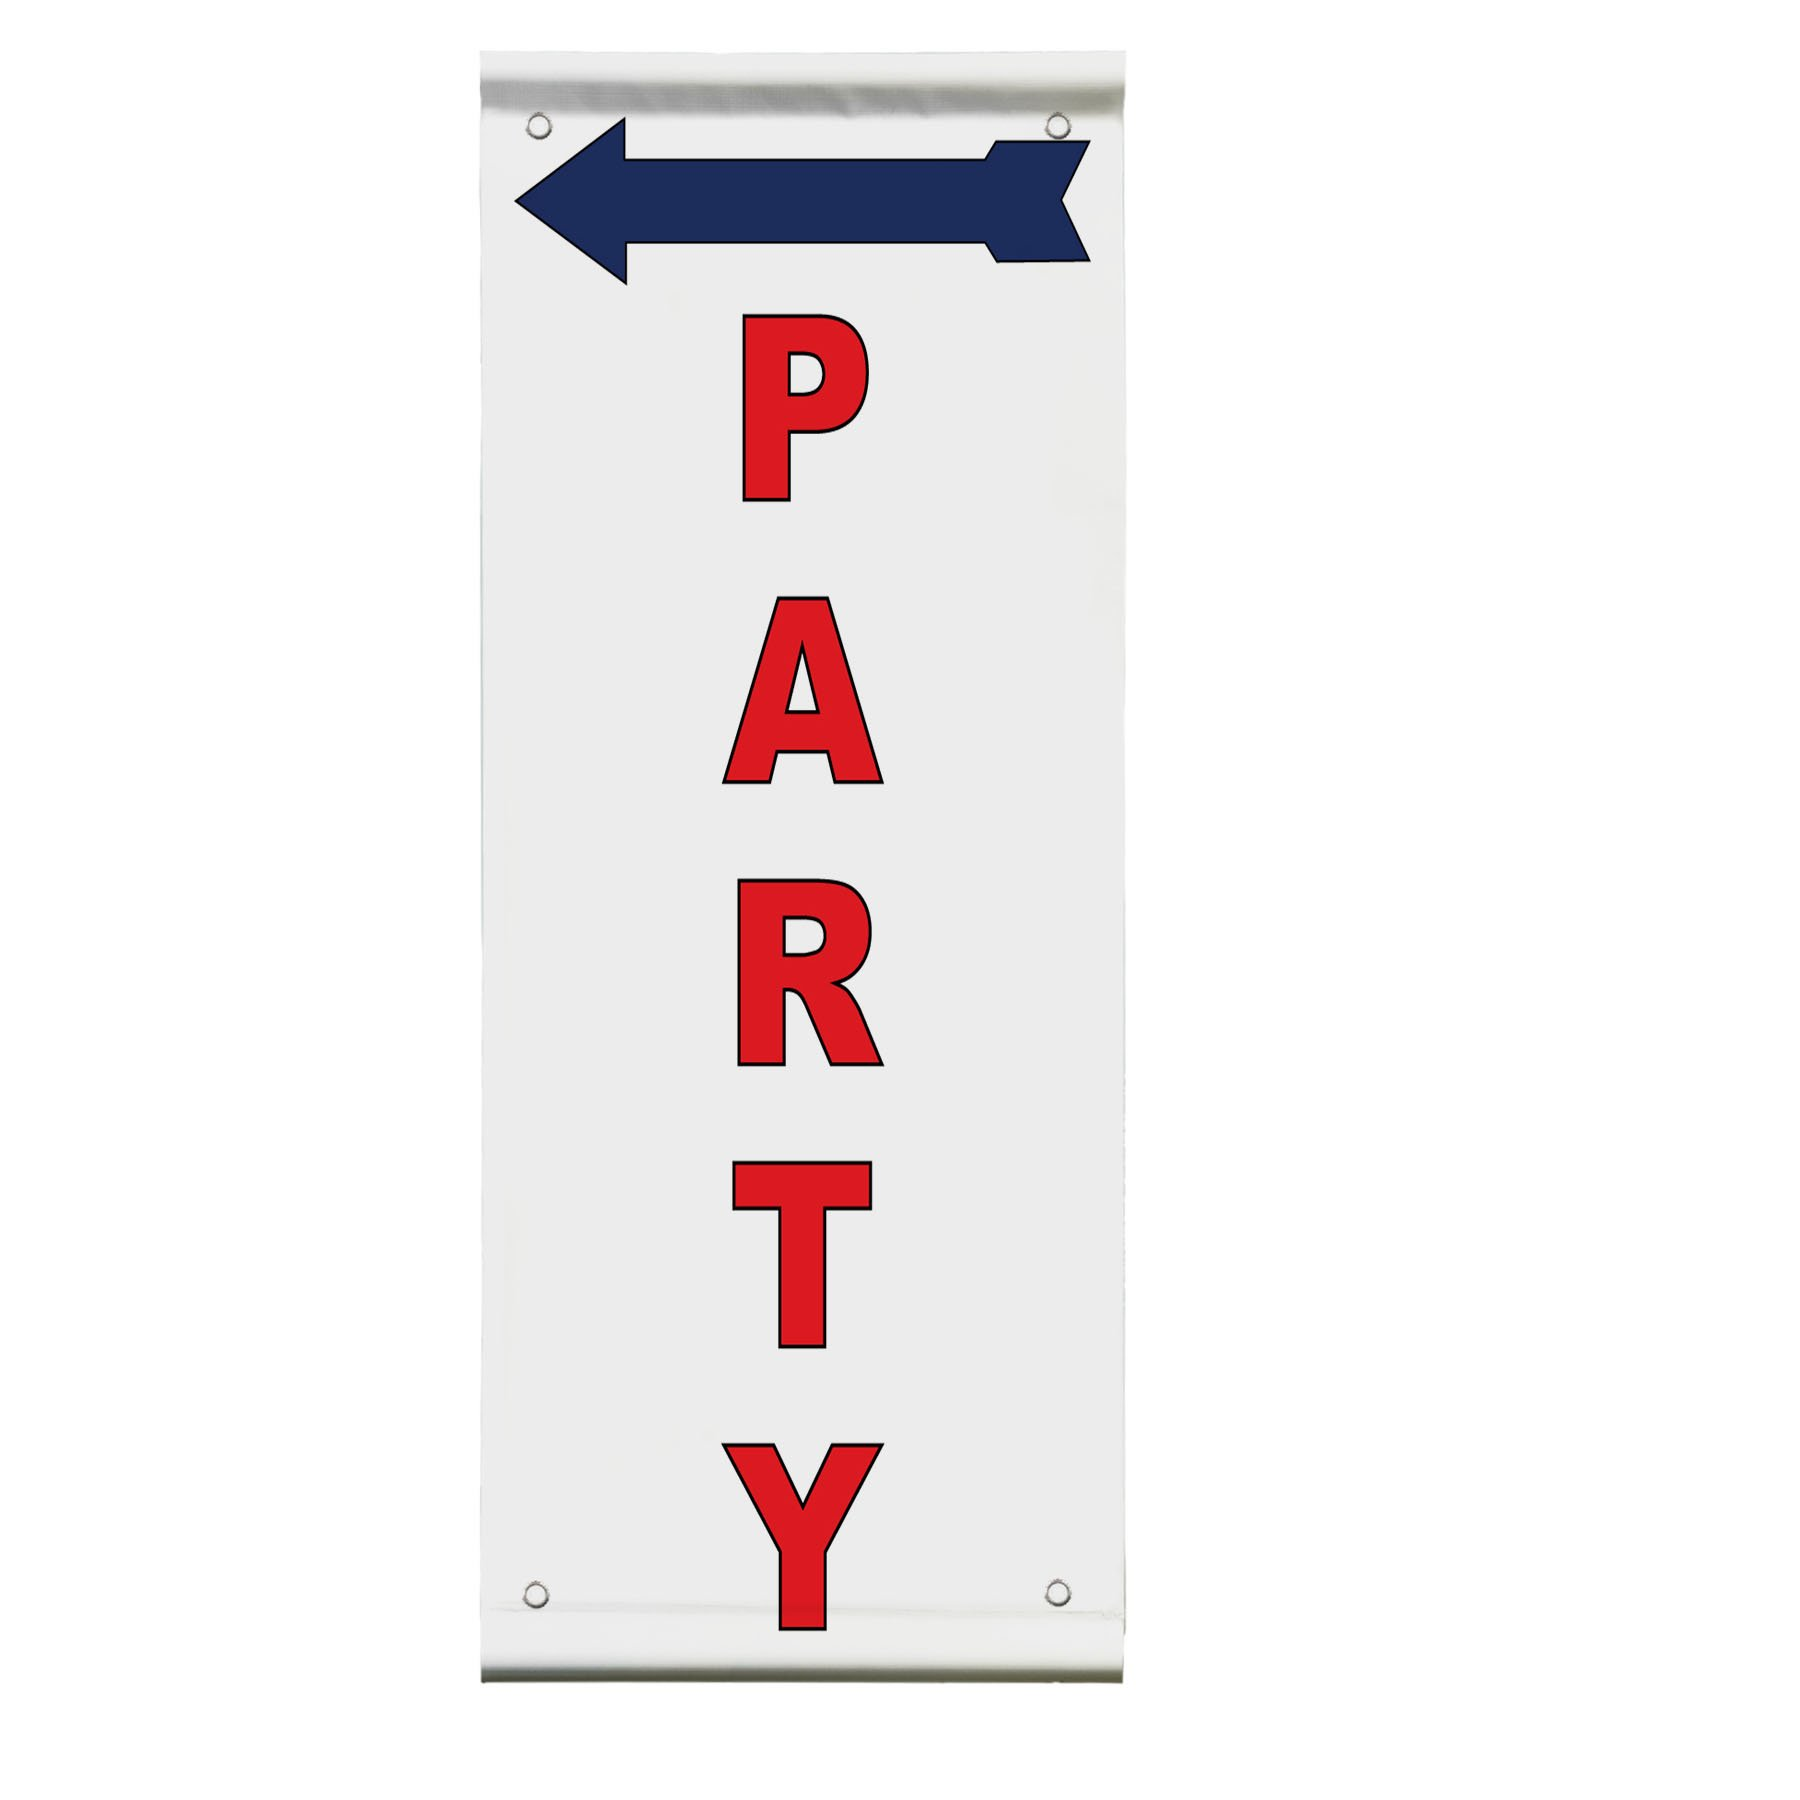 Party Red Arrow Left Double Sided Vertical Pole Banner Sign 36 in x 72 in w/ Wall Bracket